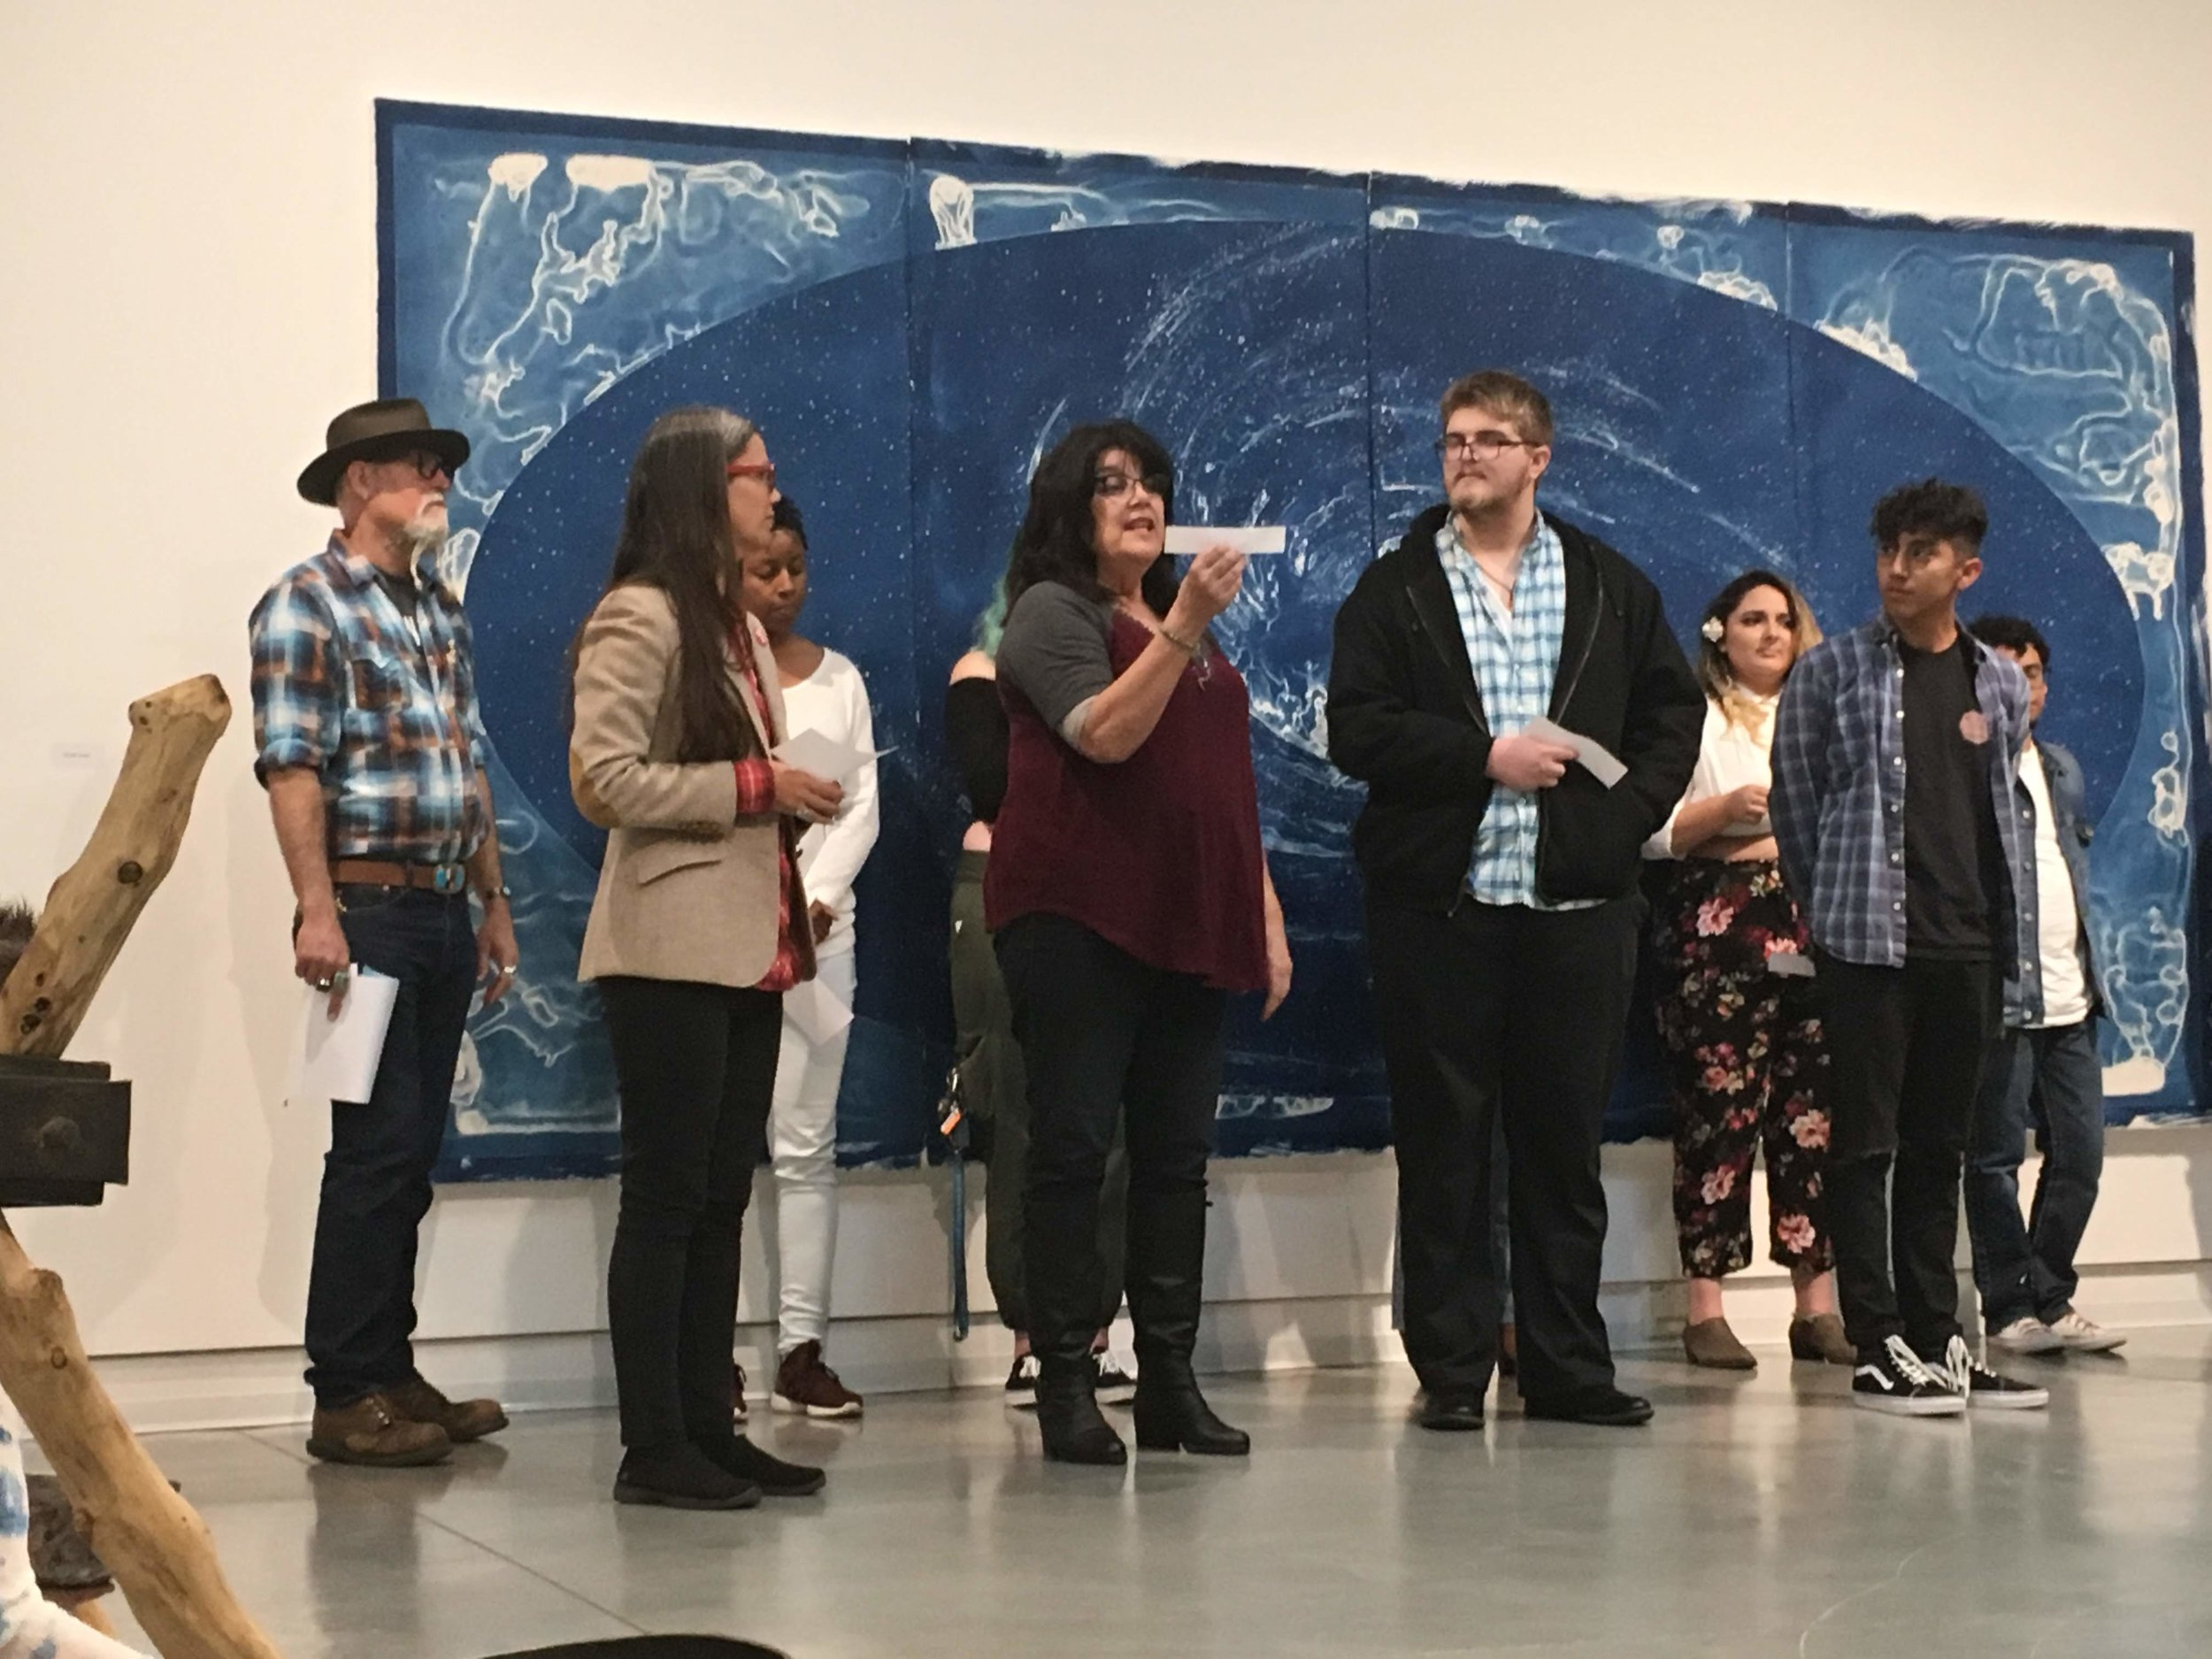 Poetry And voice - Poets, actors and students share original and historical poems about the heavens and the earth. In a sound performance, participants read prayers that have been contributed to the Skywheel Project, accompanied by musical bowls.